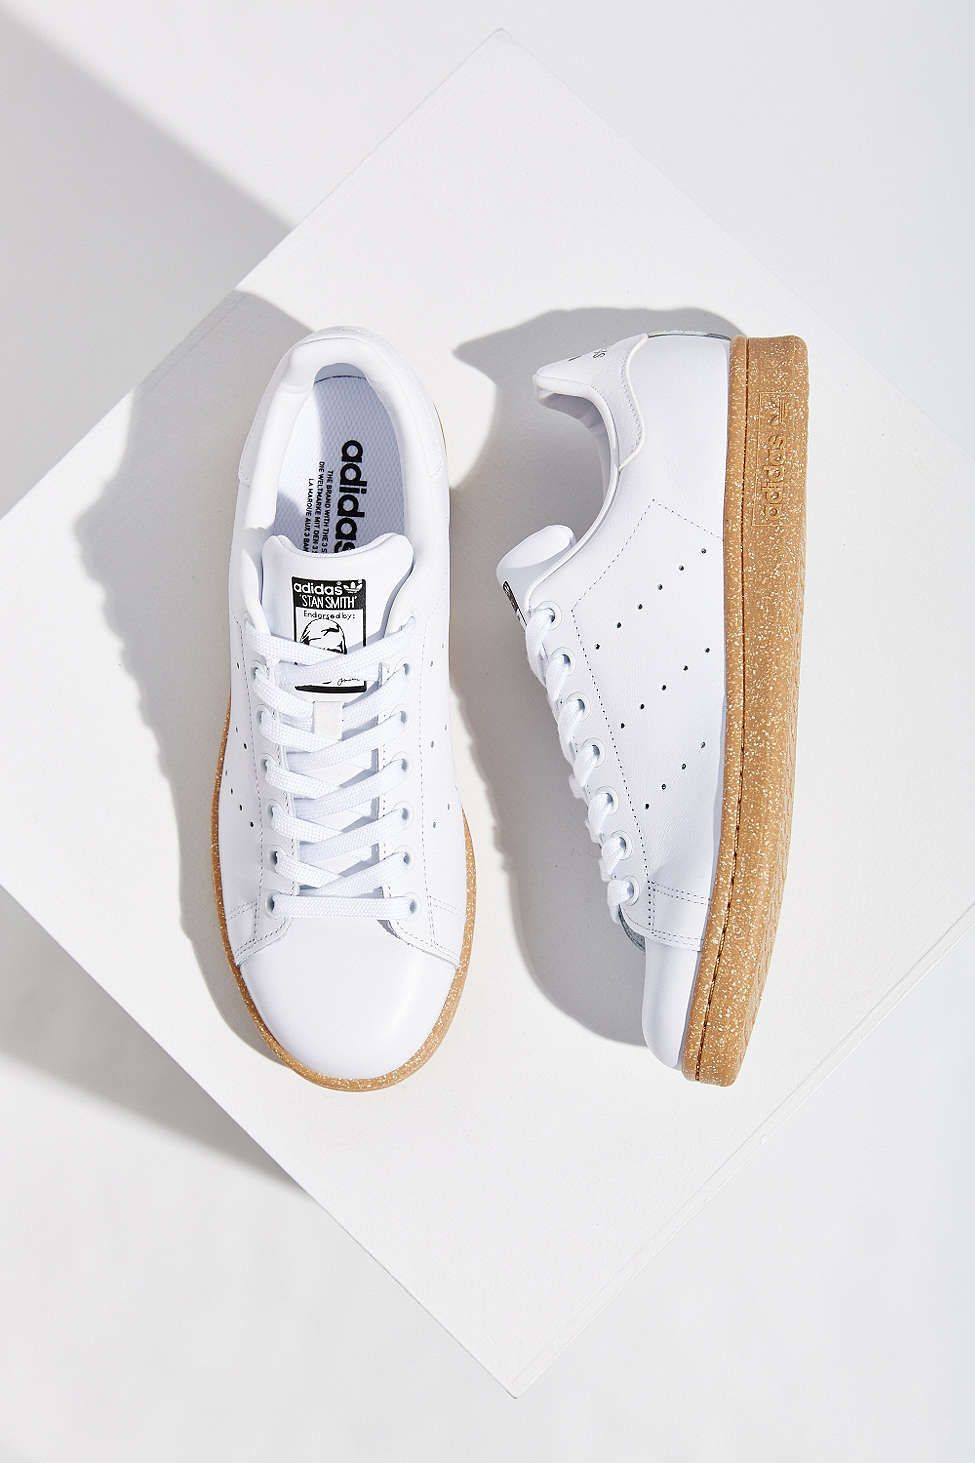 adidas nmd white gum adidas stan smith white light blue